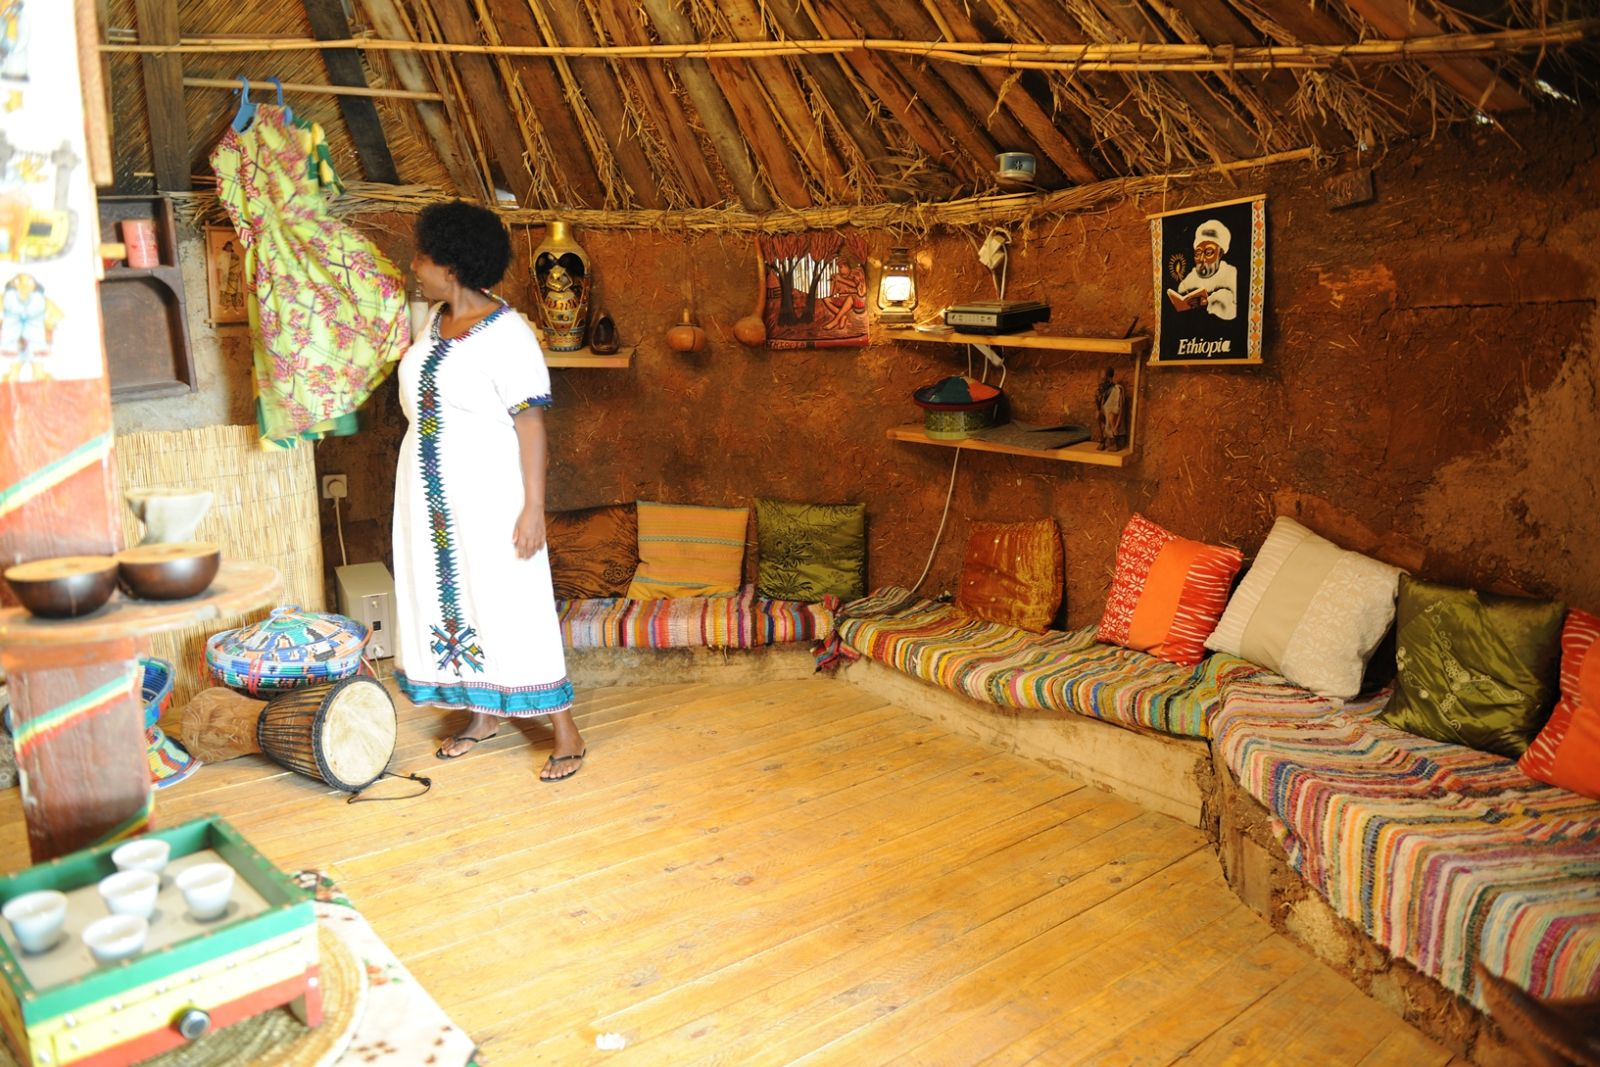 Yoney Skiba offers many hands-on activities in her recreated Ethiopian hut on Kibbutz Evron. Photo courtesy of Treasures of the Galilee